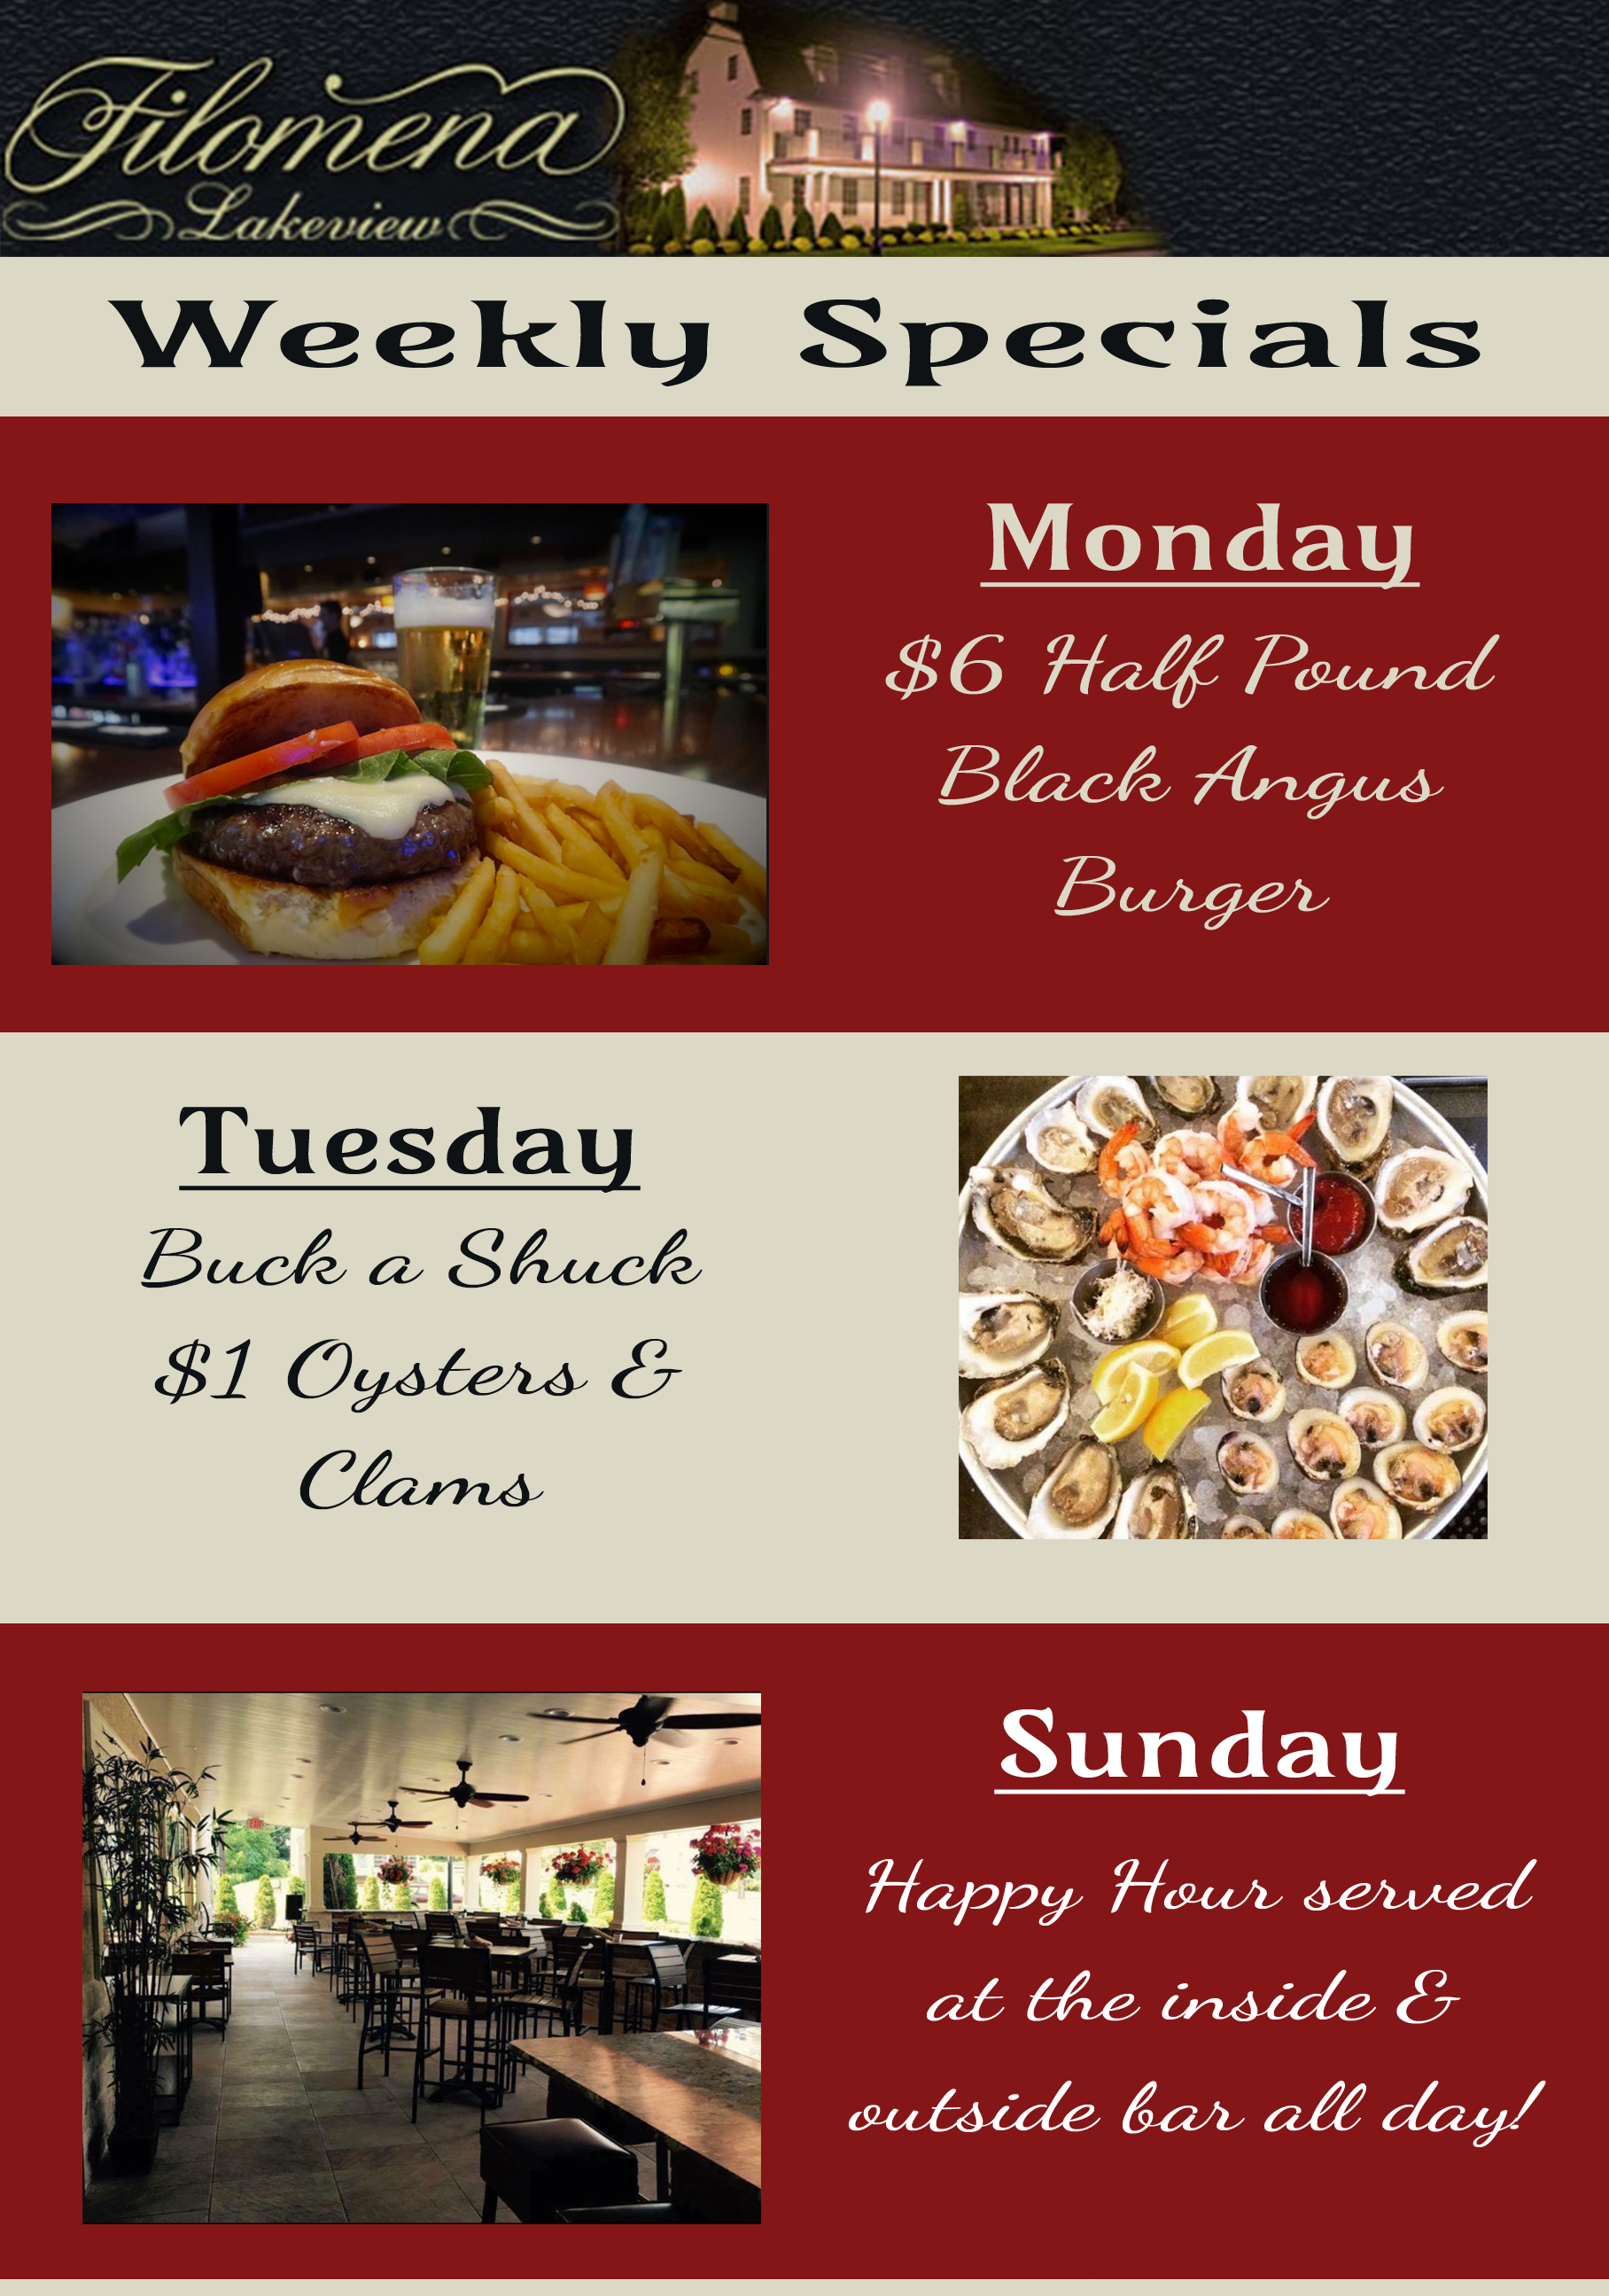 filomena lakeview weekly specials monday $6 half pound black angus burger. tuesday buck a shuck $1 oysters and clams. sunday happy hour served at the inside and outside bar all day!